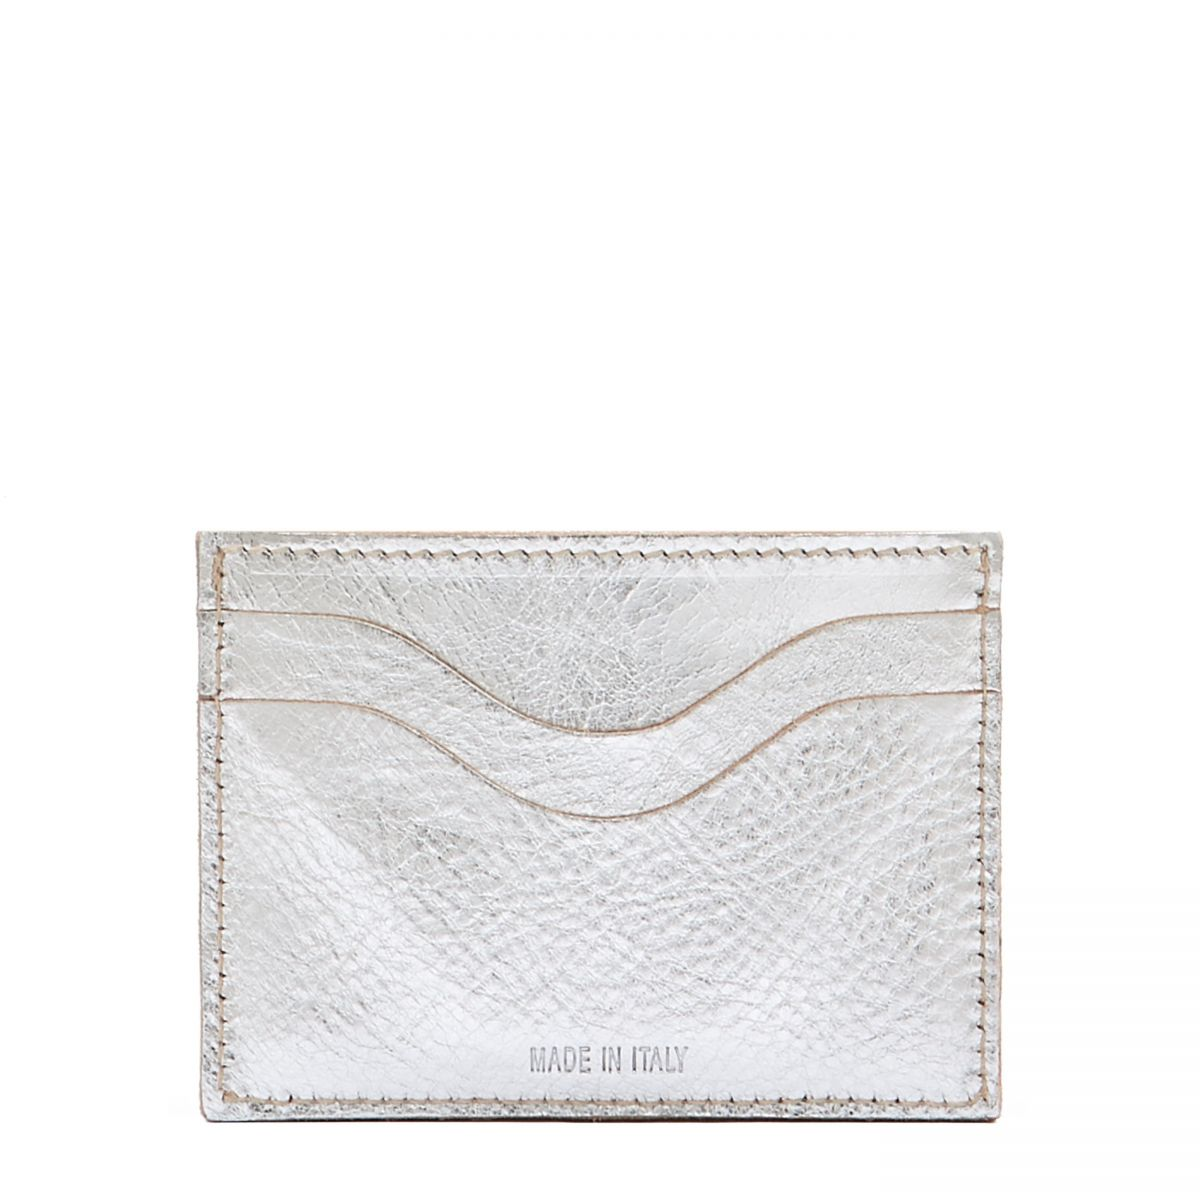 Card Case Salina in Metallic Leather SCC050 color Metallic Silver | Details